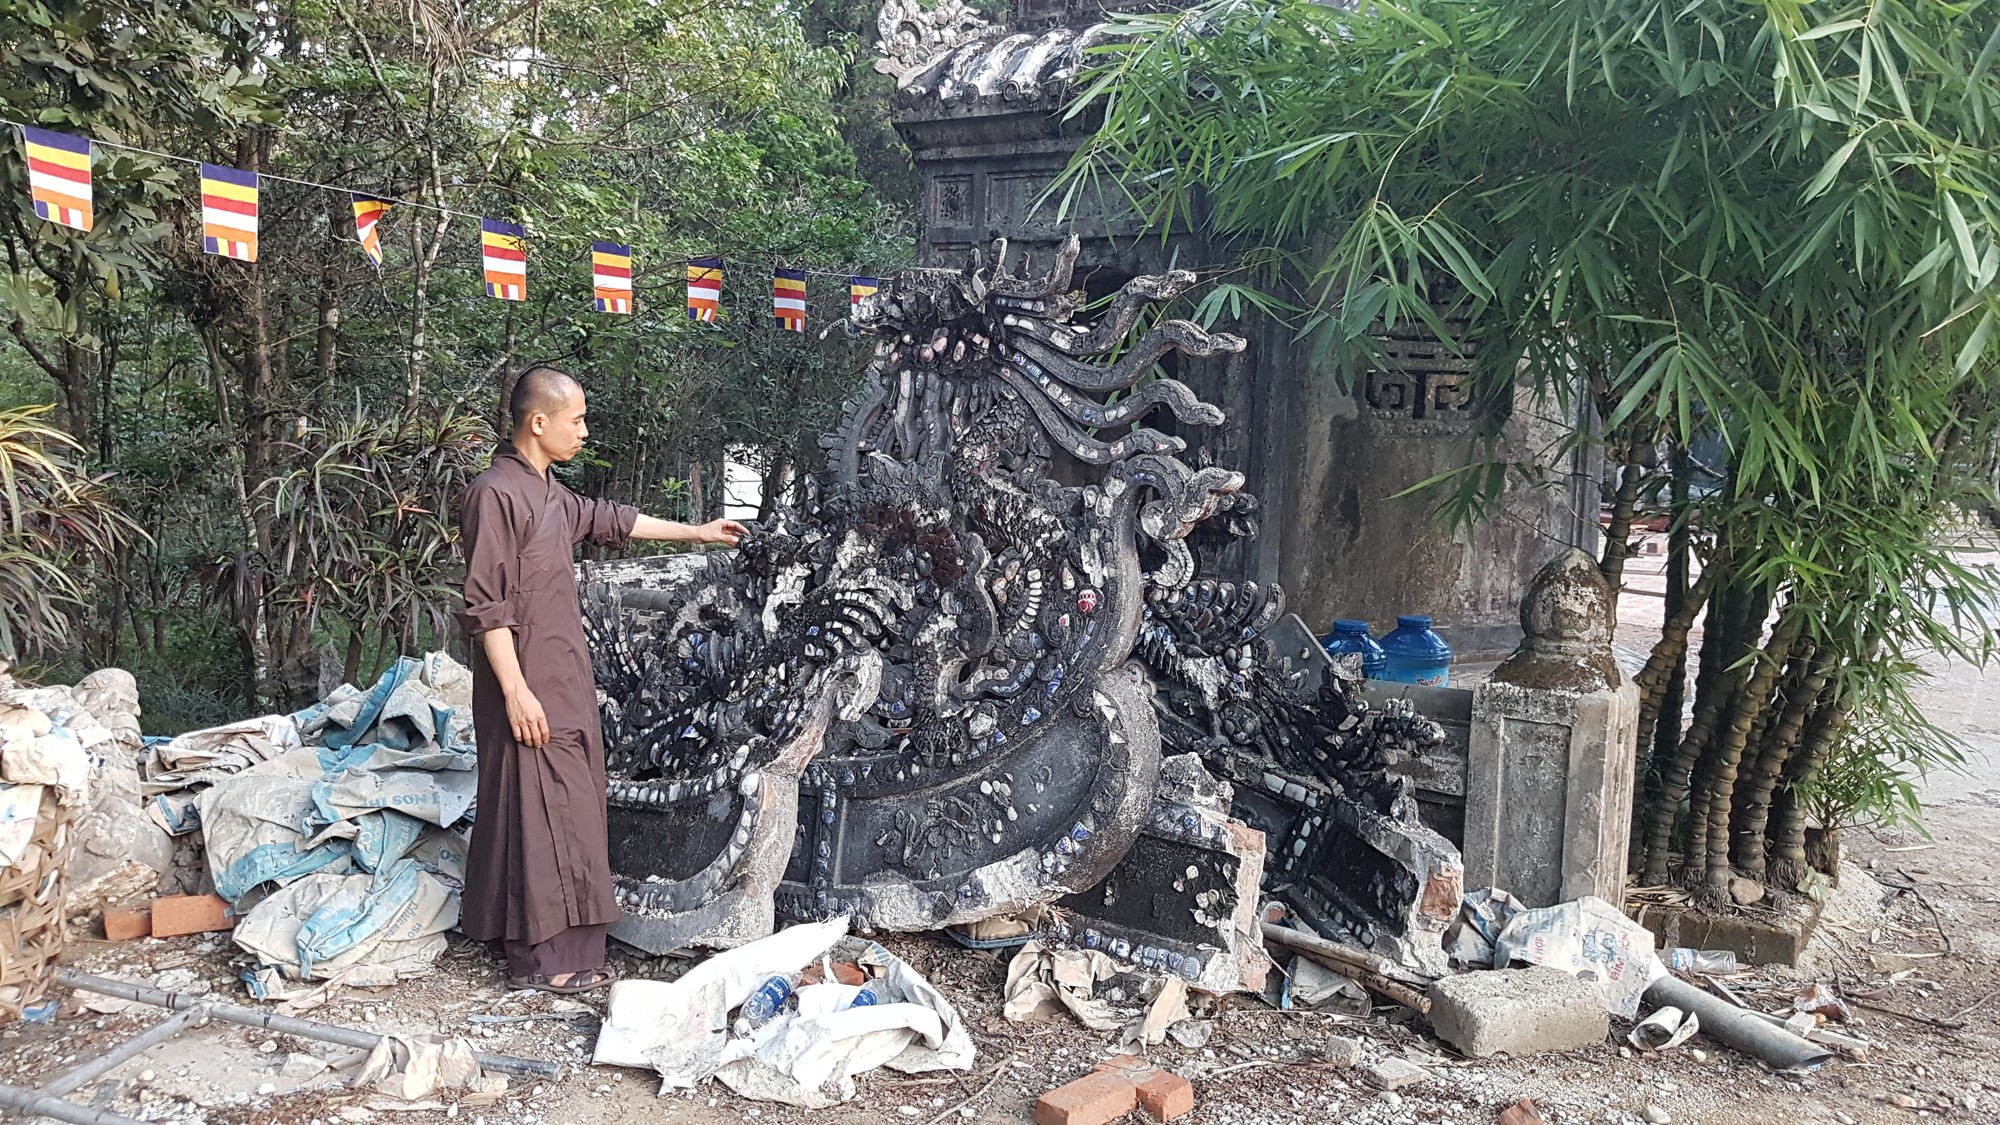 A wall sculpture removed from the main structure of the Tu Hieu Pagoda in Hue, Vietnam. Photo: Thai Loc / Tuoi Tre